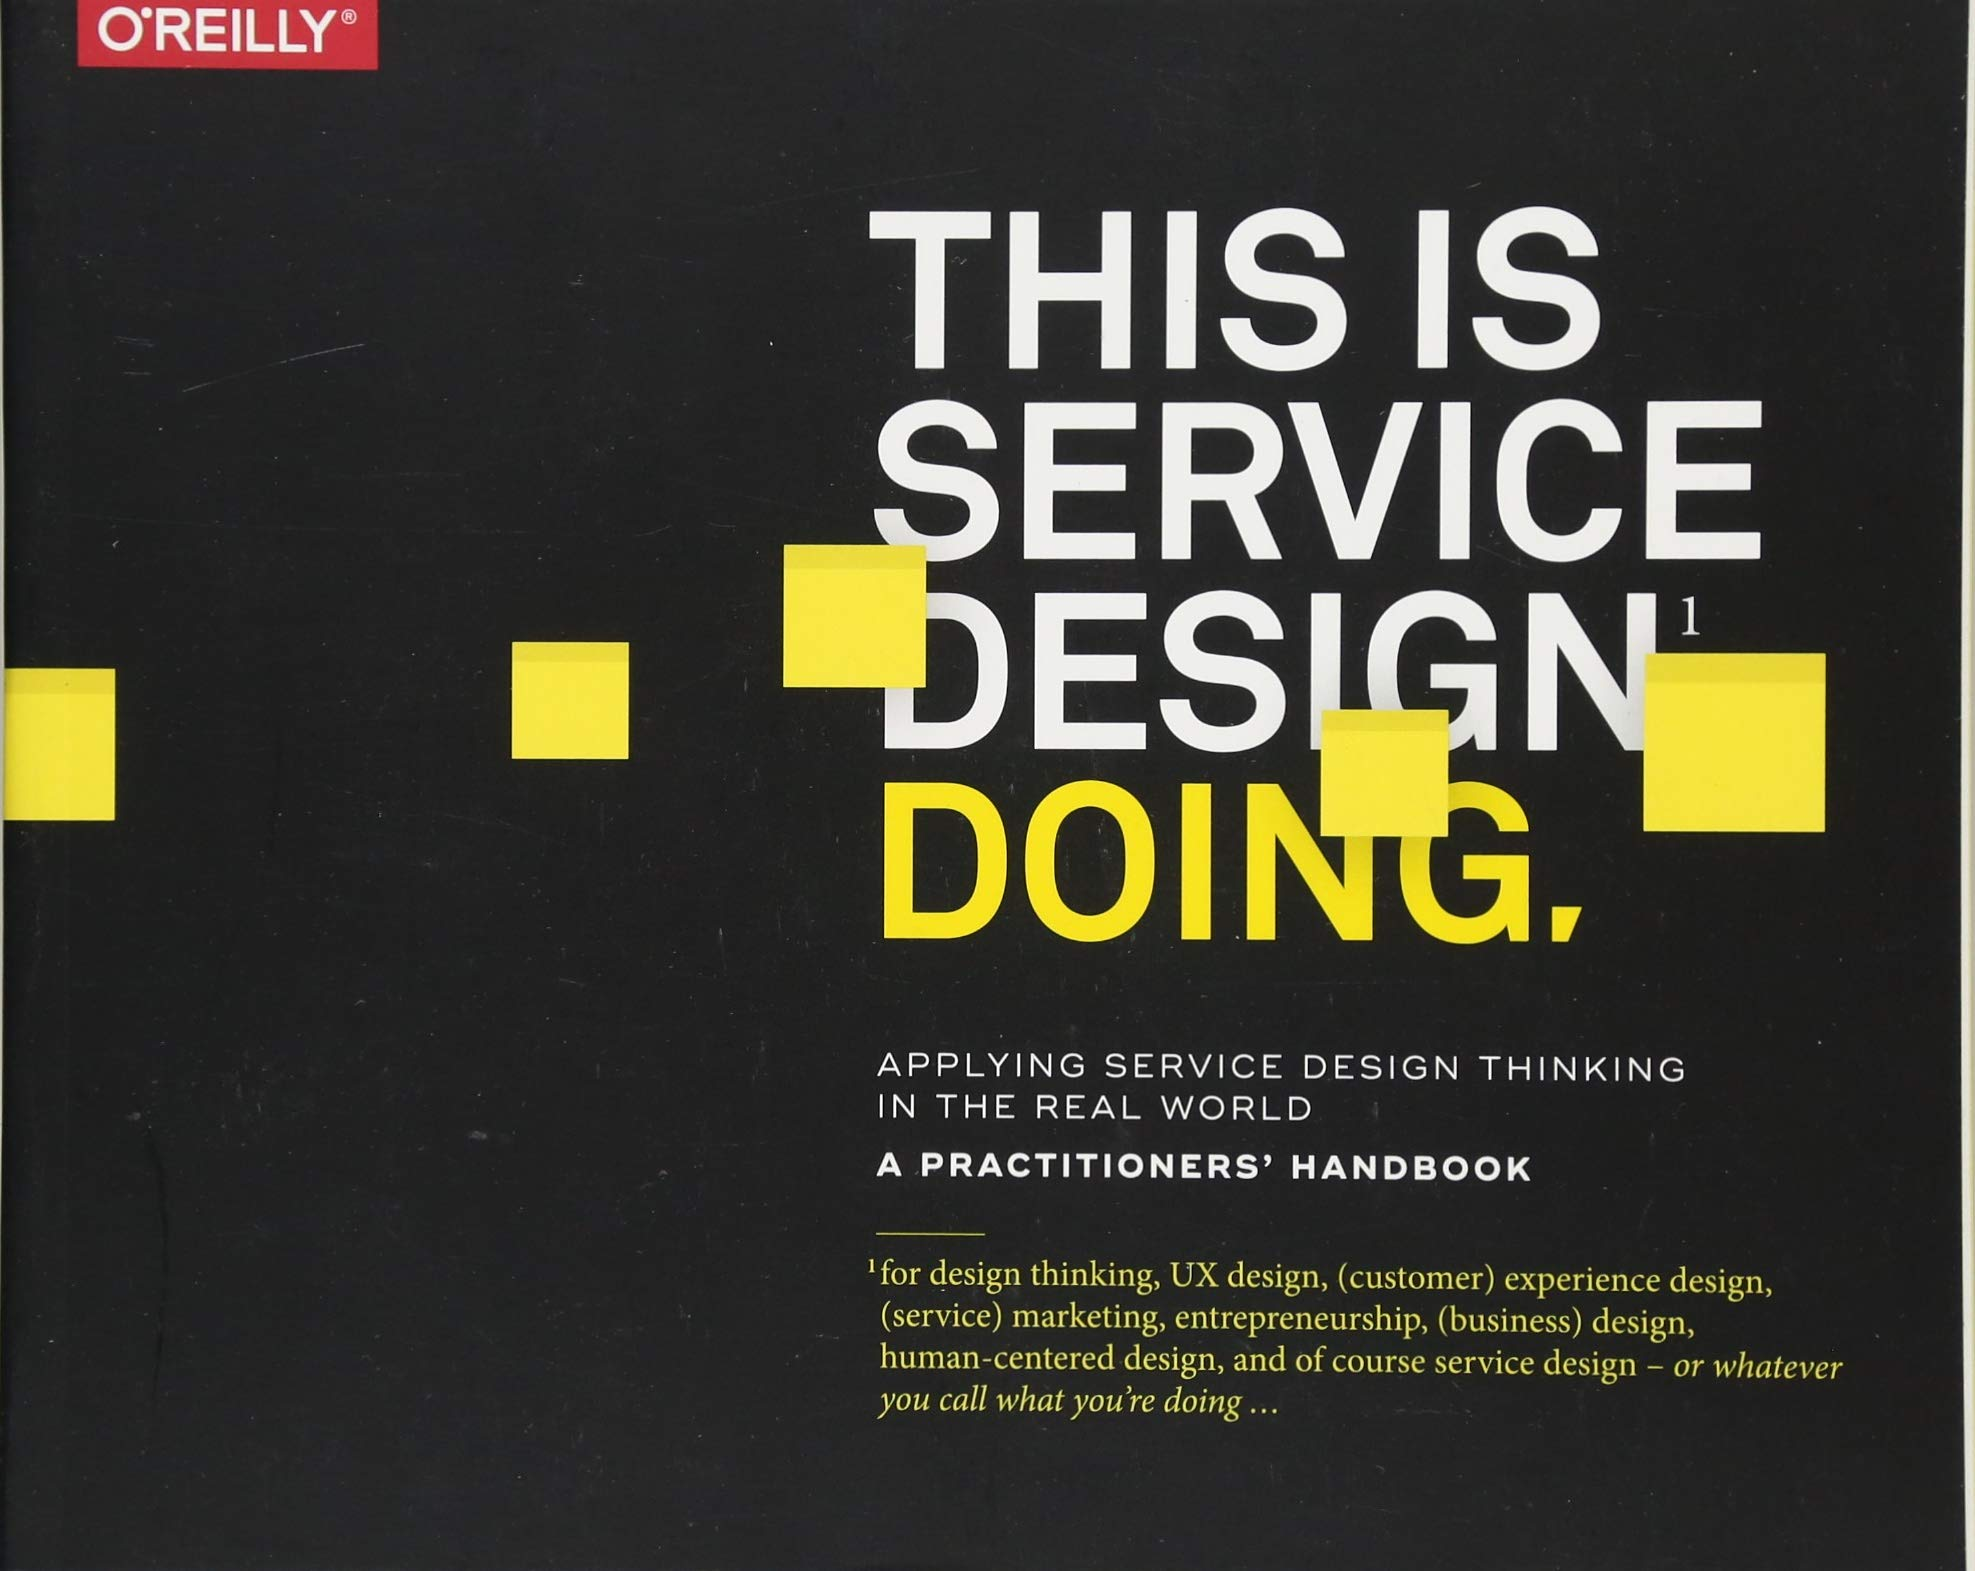 This is service design doing applying service design thinking in this is service design doing applying service design thinking in the real world marc stickdorn markus edgar hormess adam lawrence jakob schneider gumiabroncs Choice Image